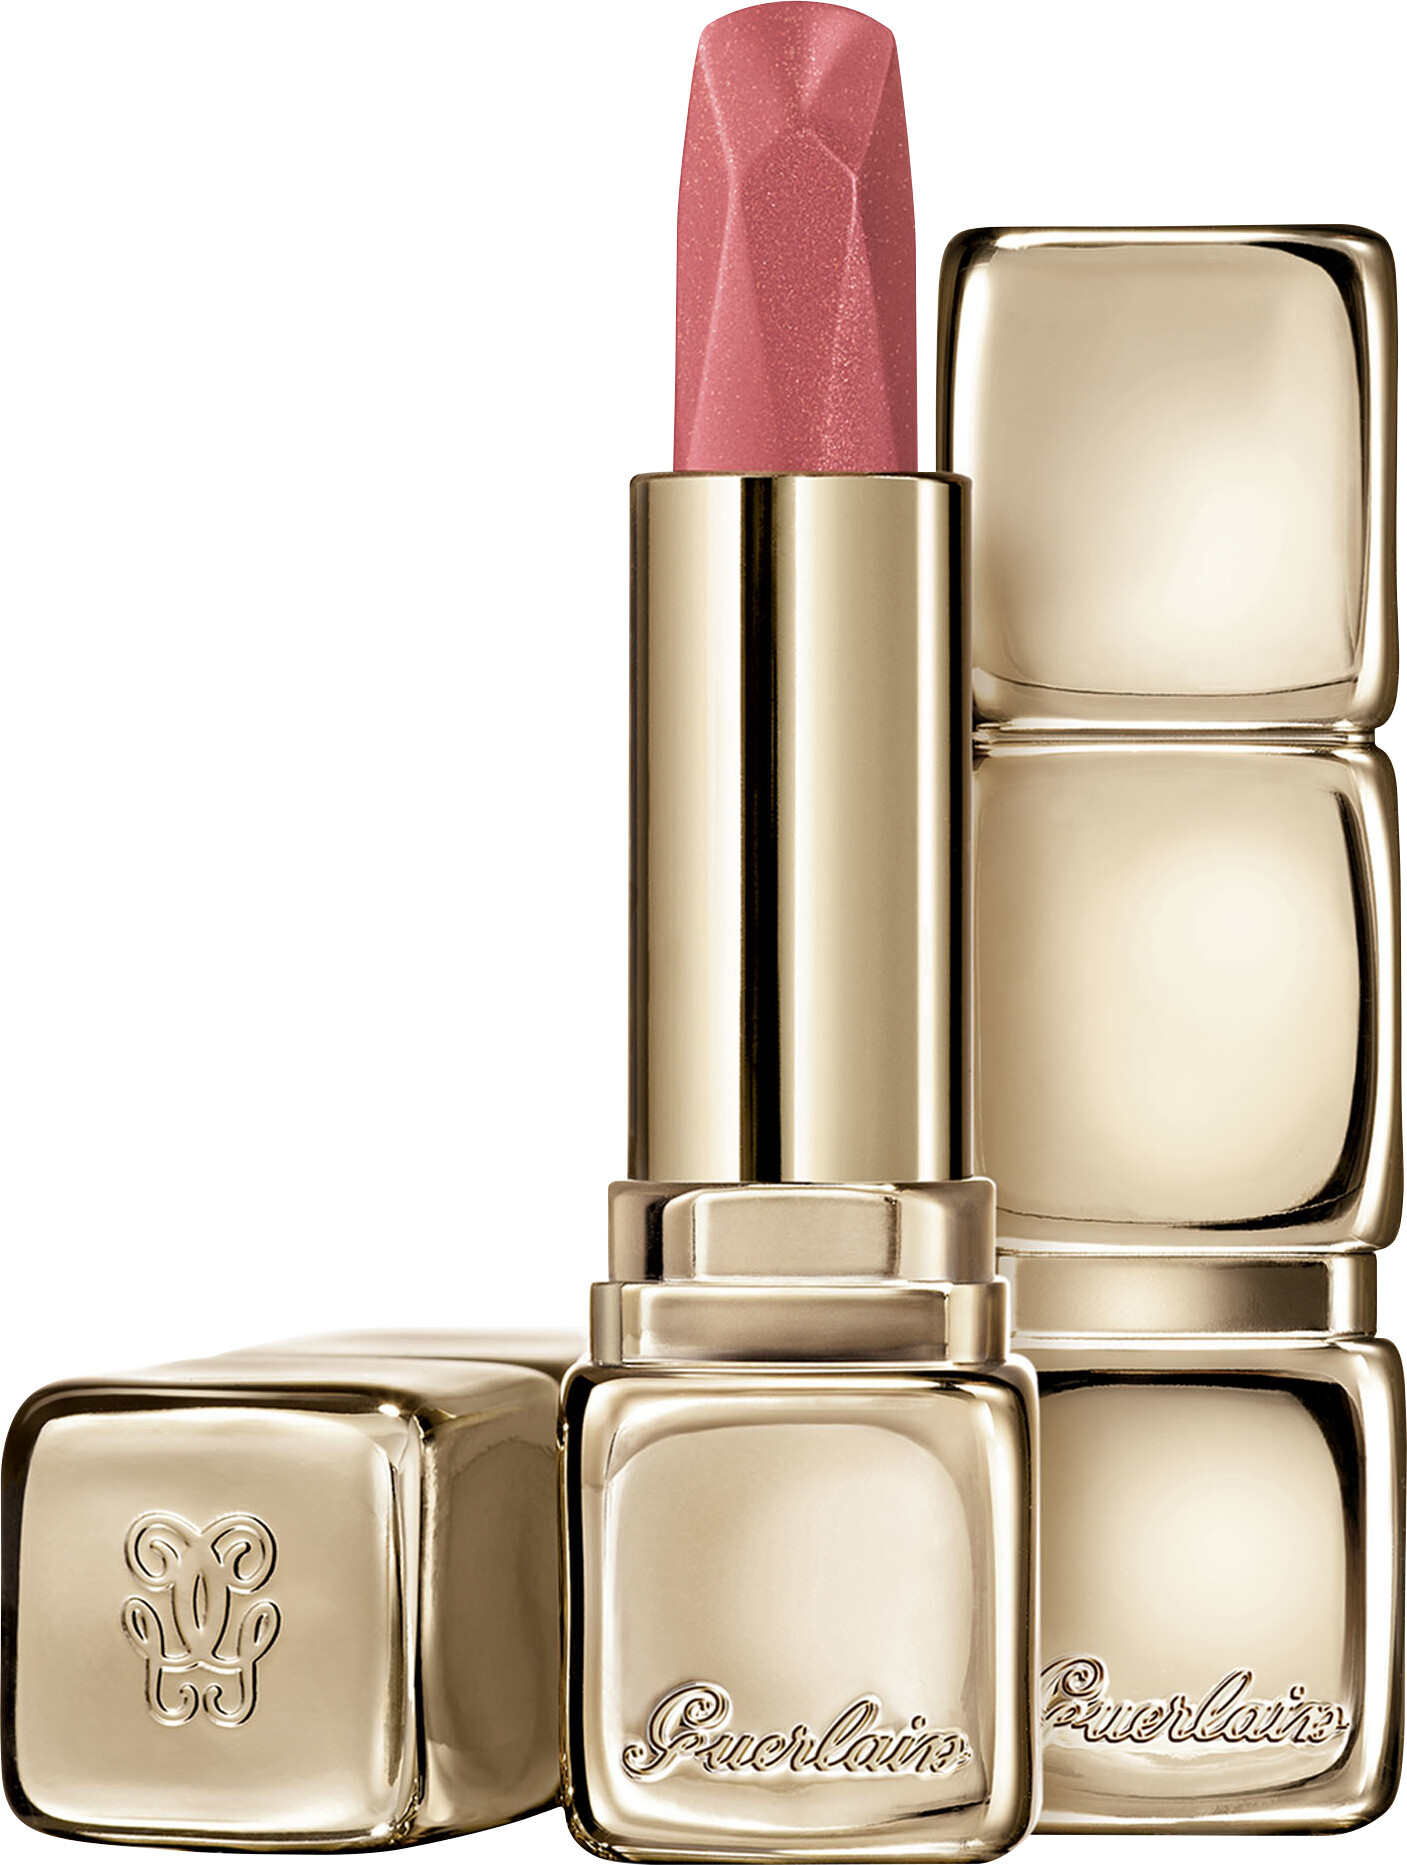 Guerlain Kisskiss Diamond Lipstick Satin Finish - Satin Finish Lipstick